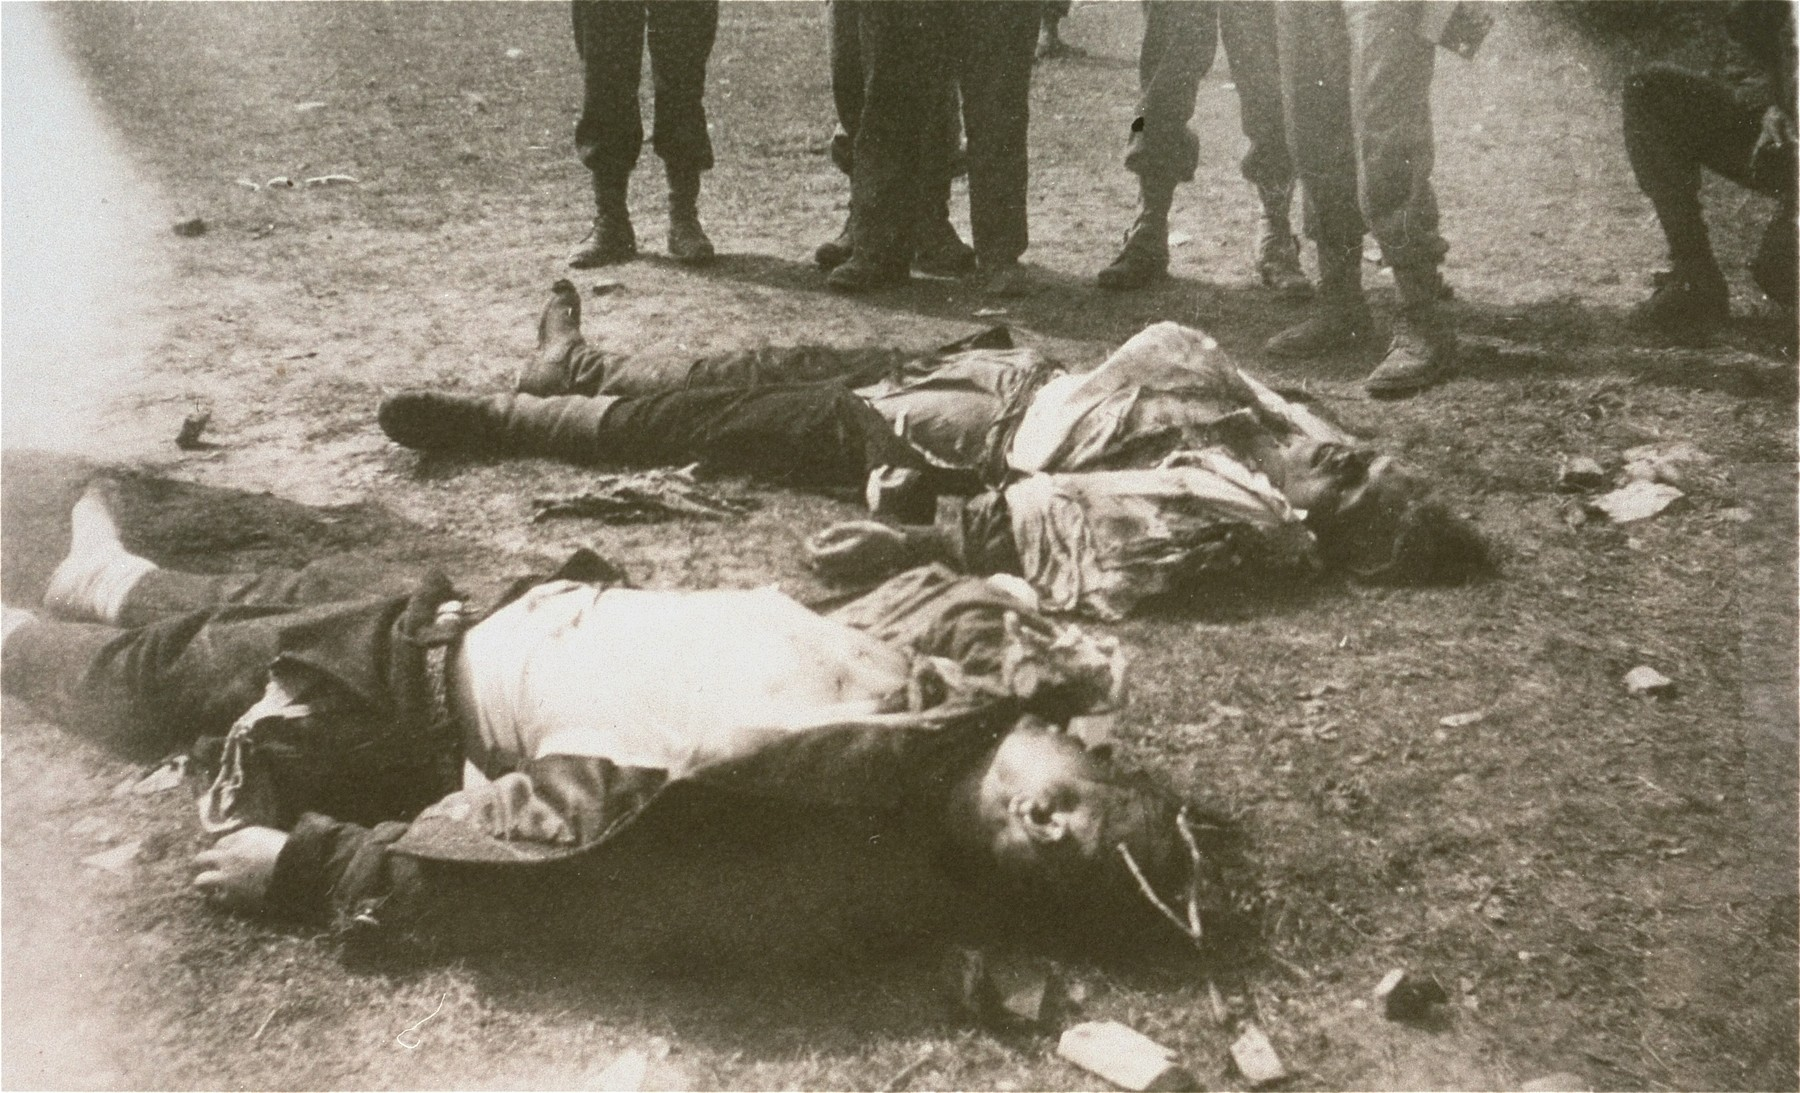 The bodies of SS guards killed in Ohrdruf by survivors.